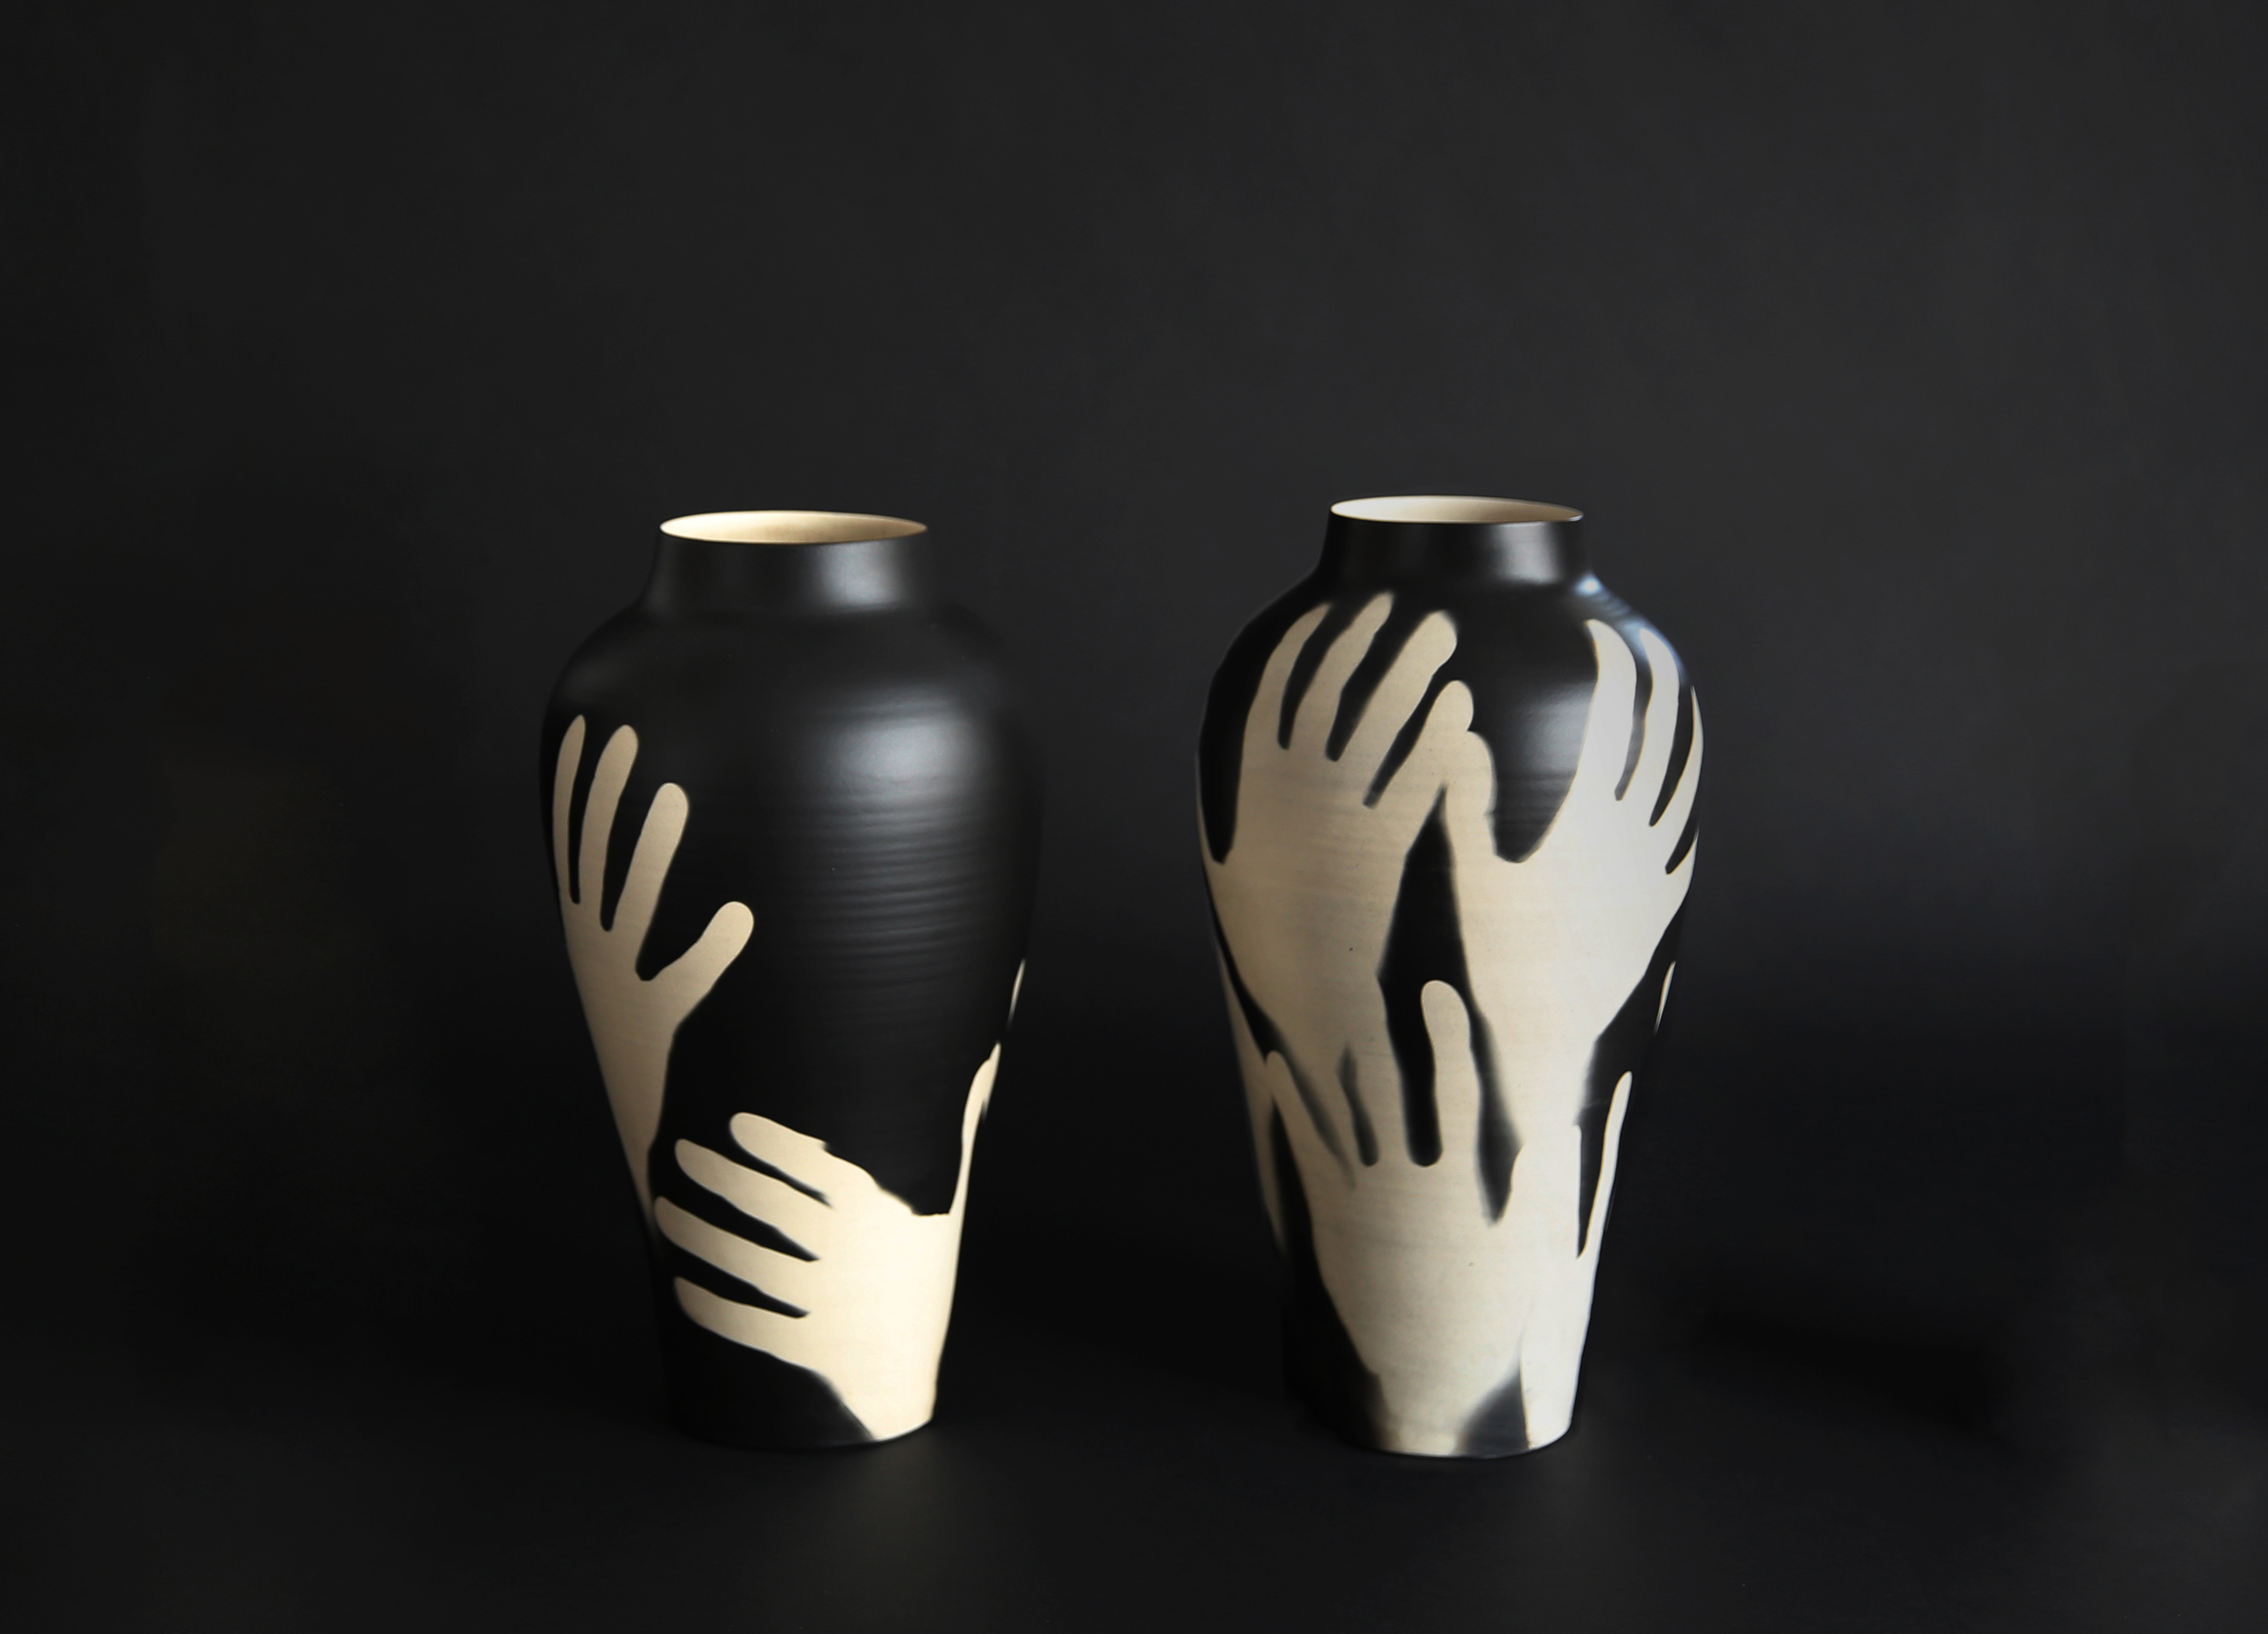 Hold Me is a collection of vases with silver gelatin photograms. The hands depicted on the pieces are achieved using an original photographic process, whereby light-sensitive vases are revolved within a shard of light.